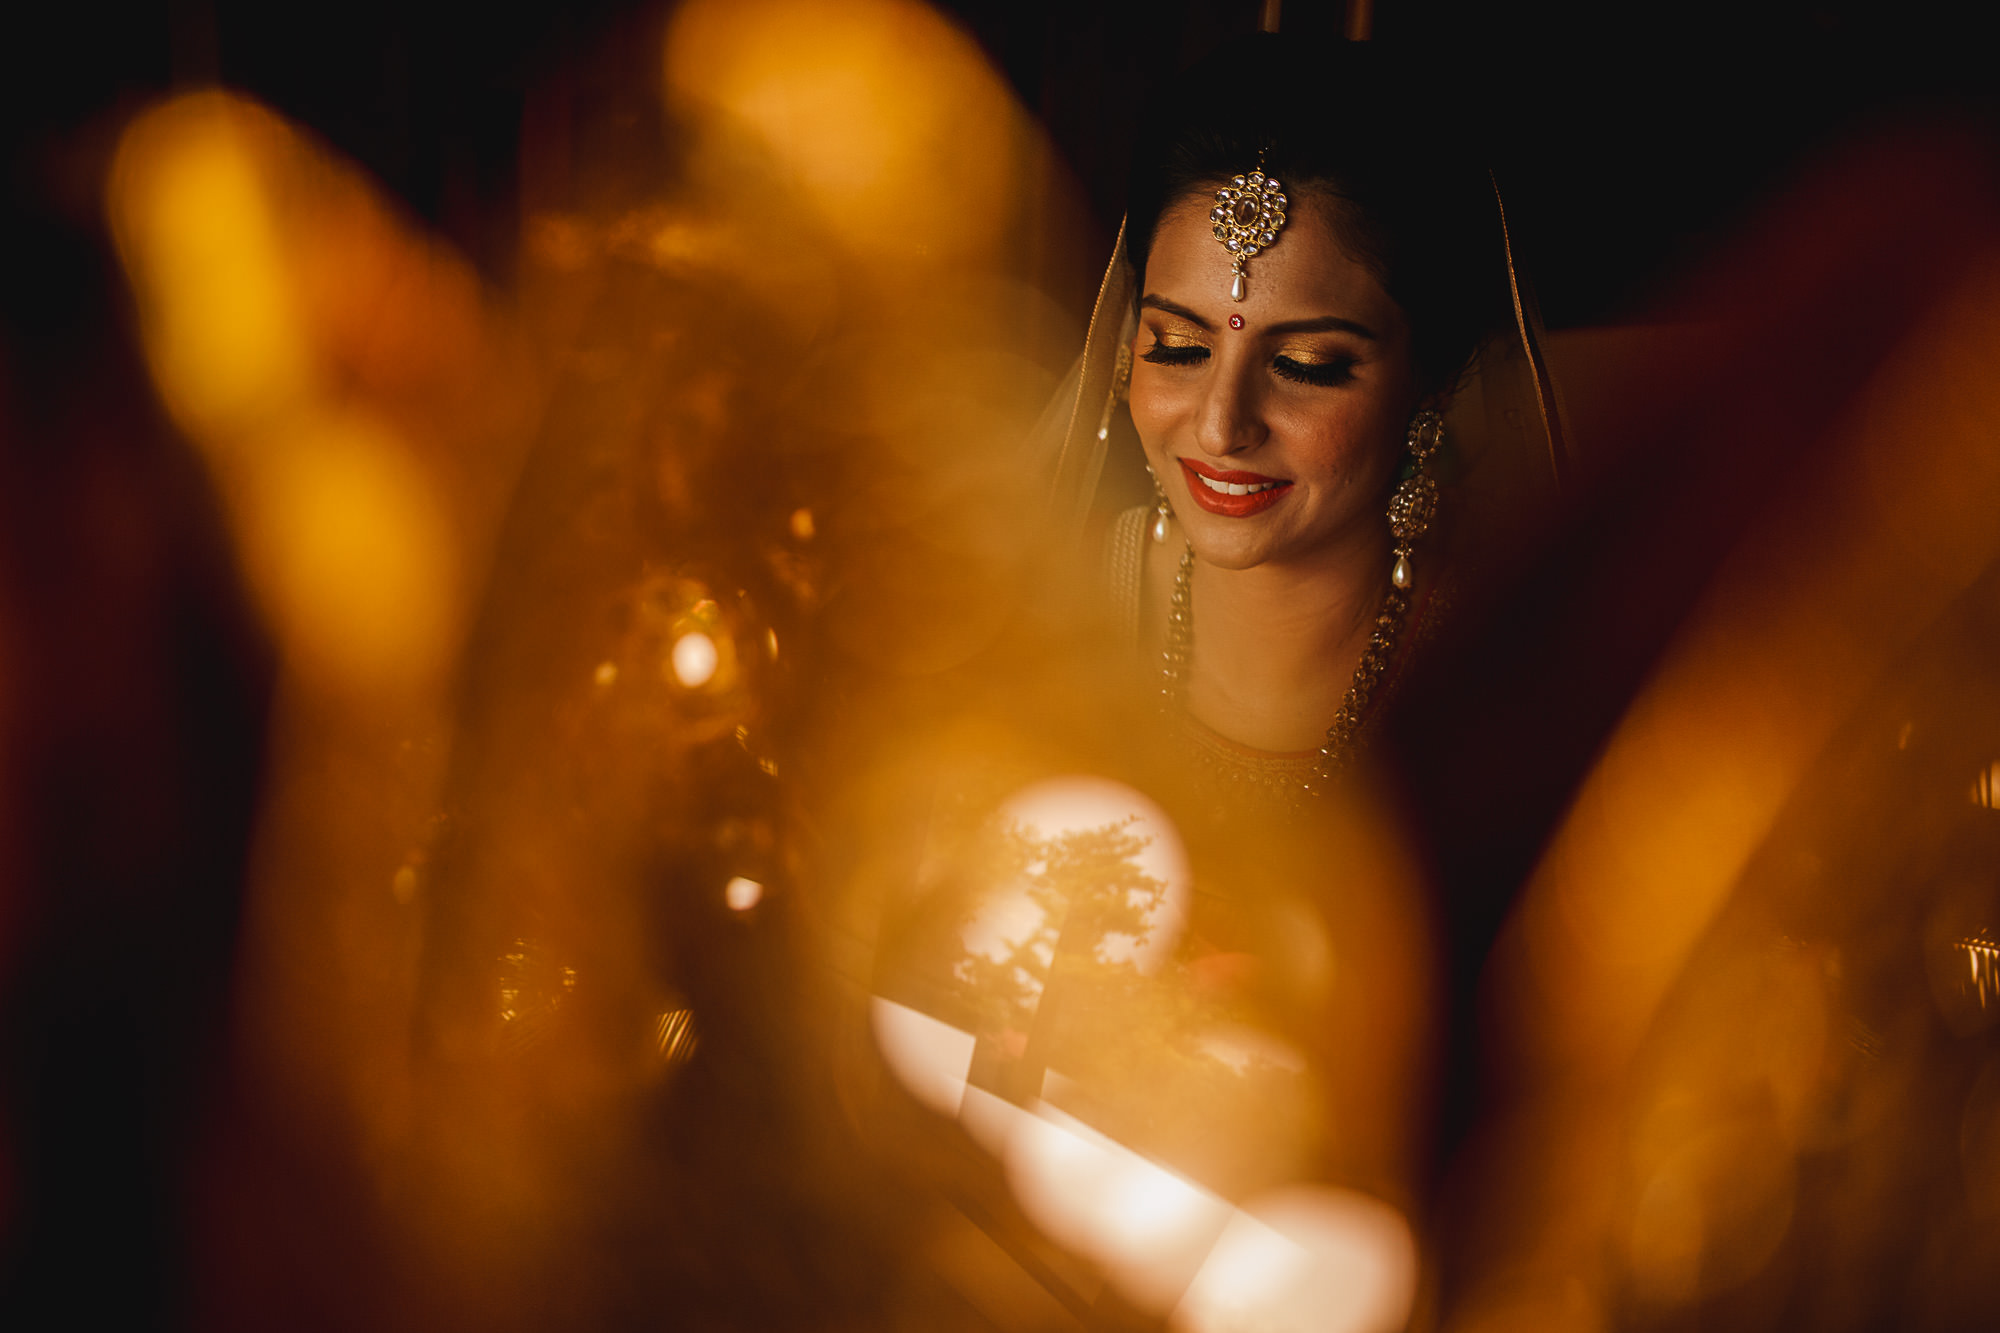 Indian destination wedding khao lak thailand 103 1